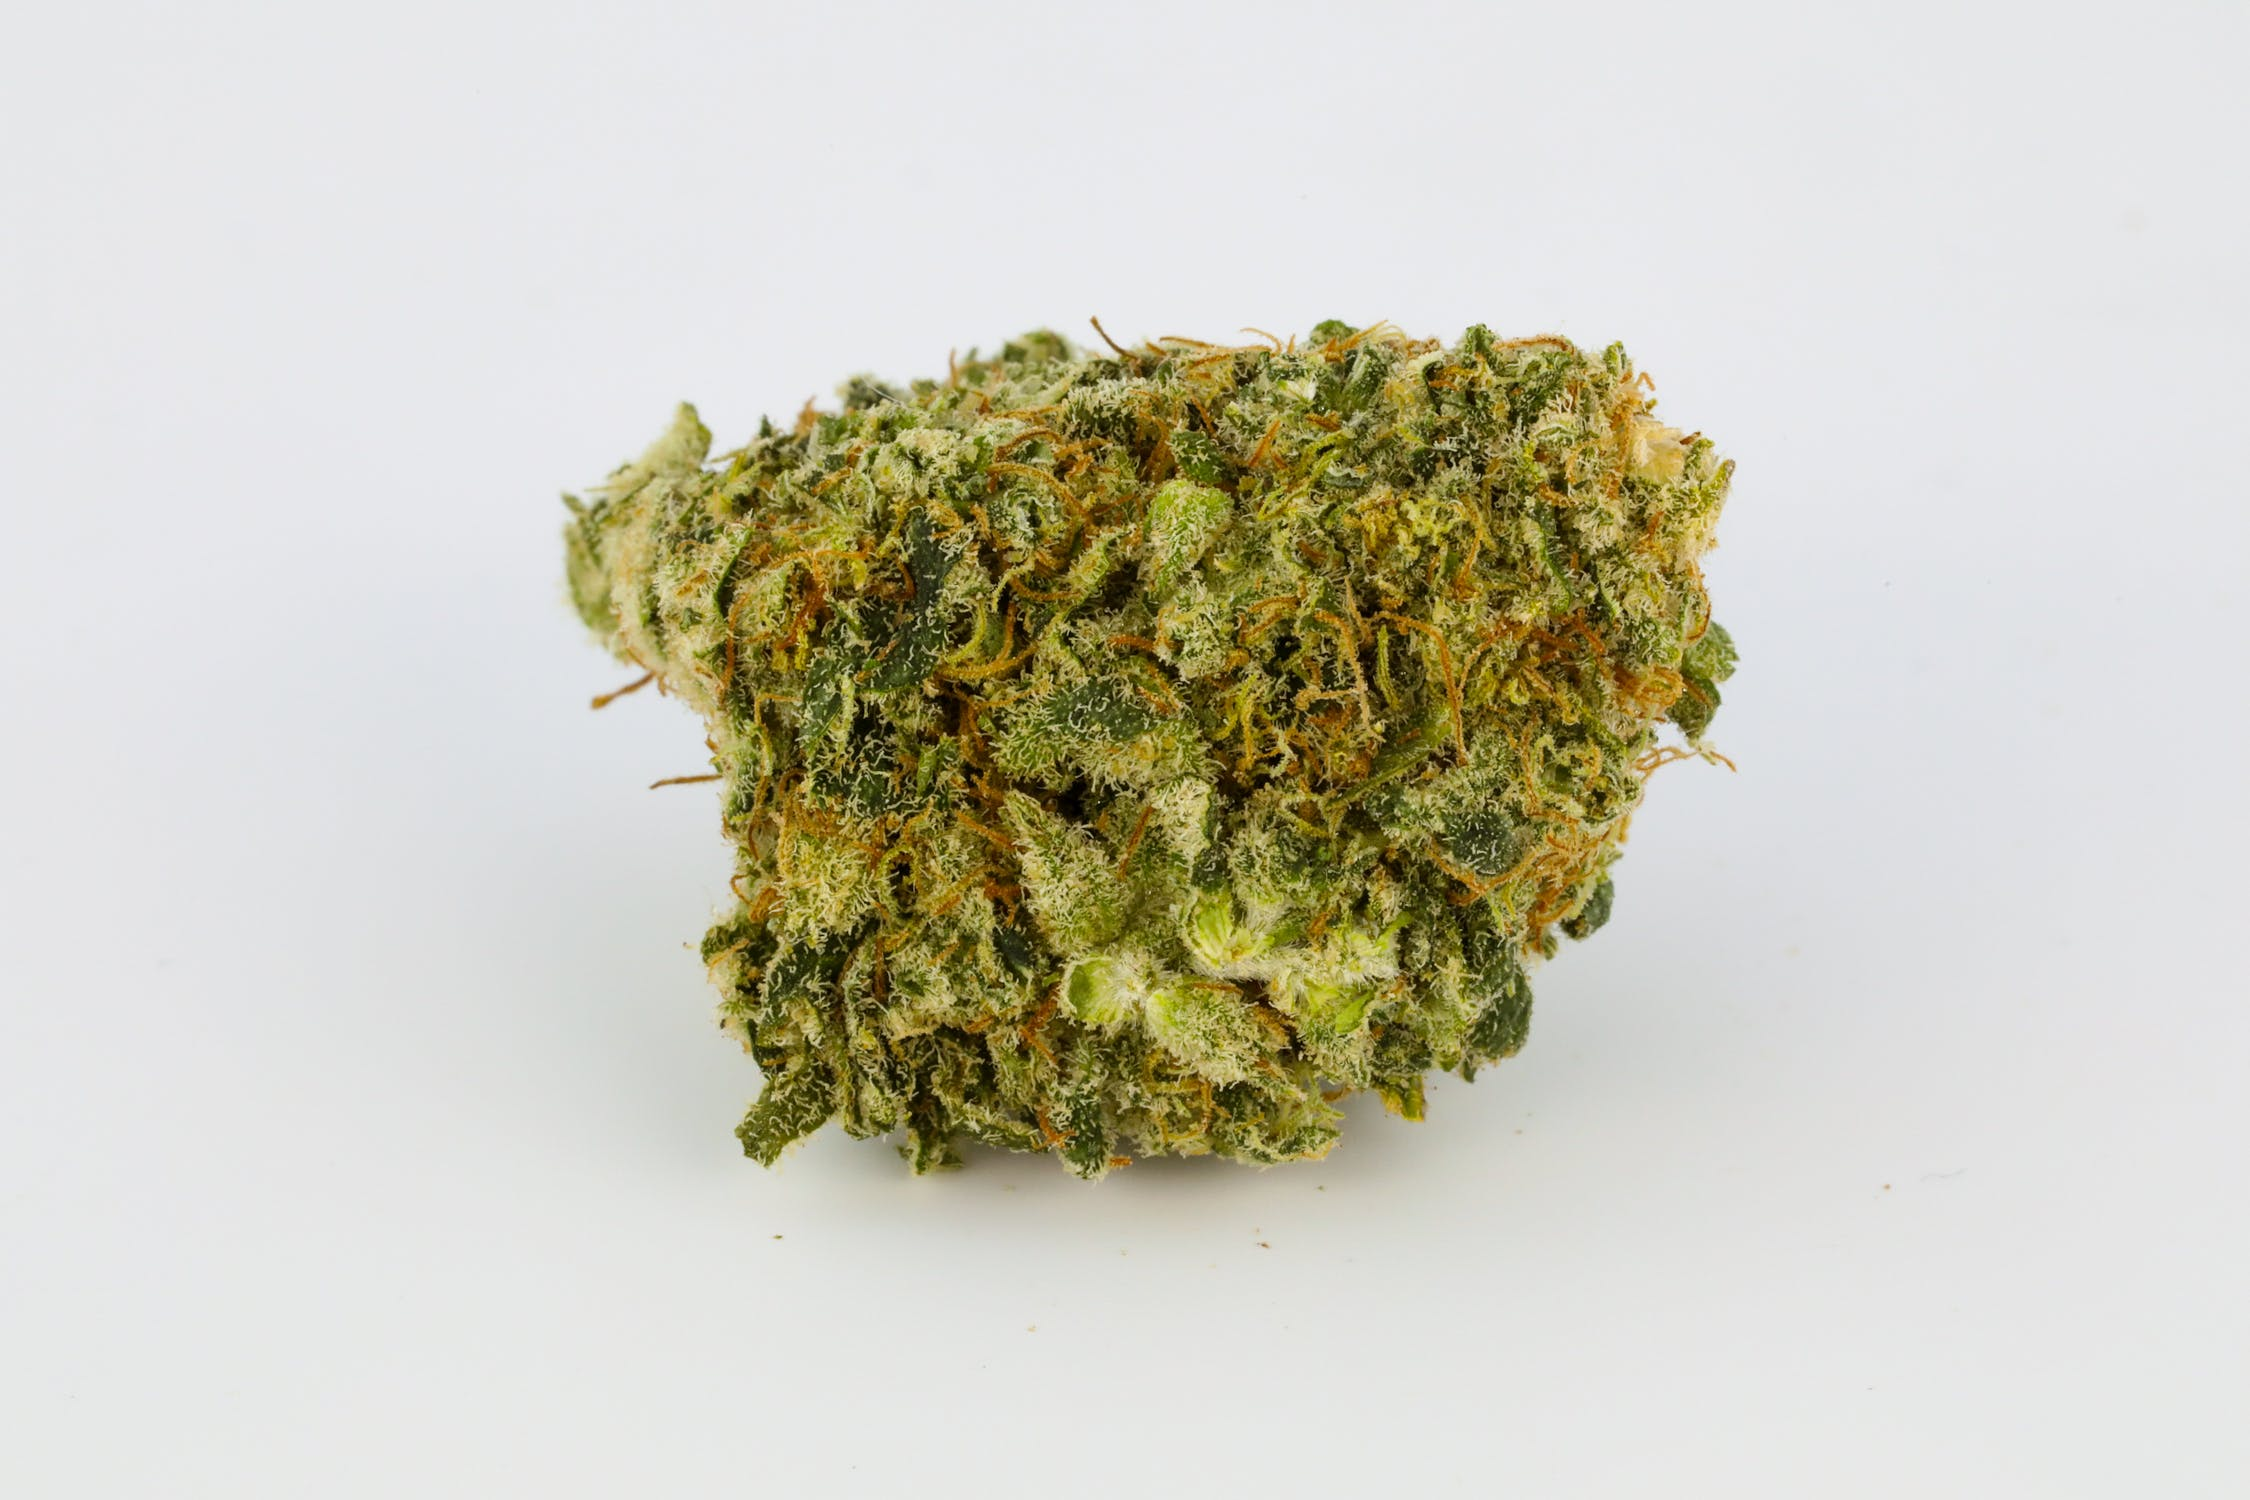 The White Weed; The White Cannabis Strain; The White Hybrid Marijuana Strain